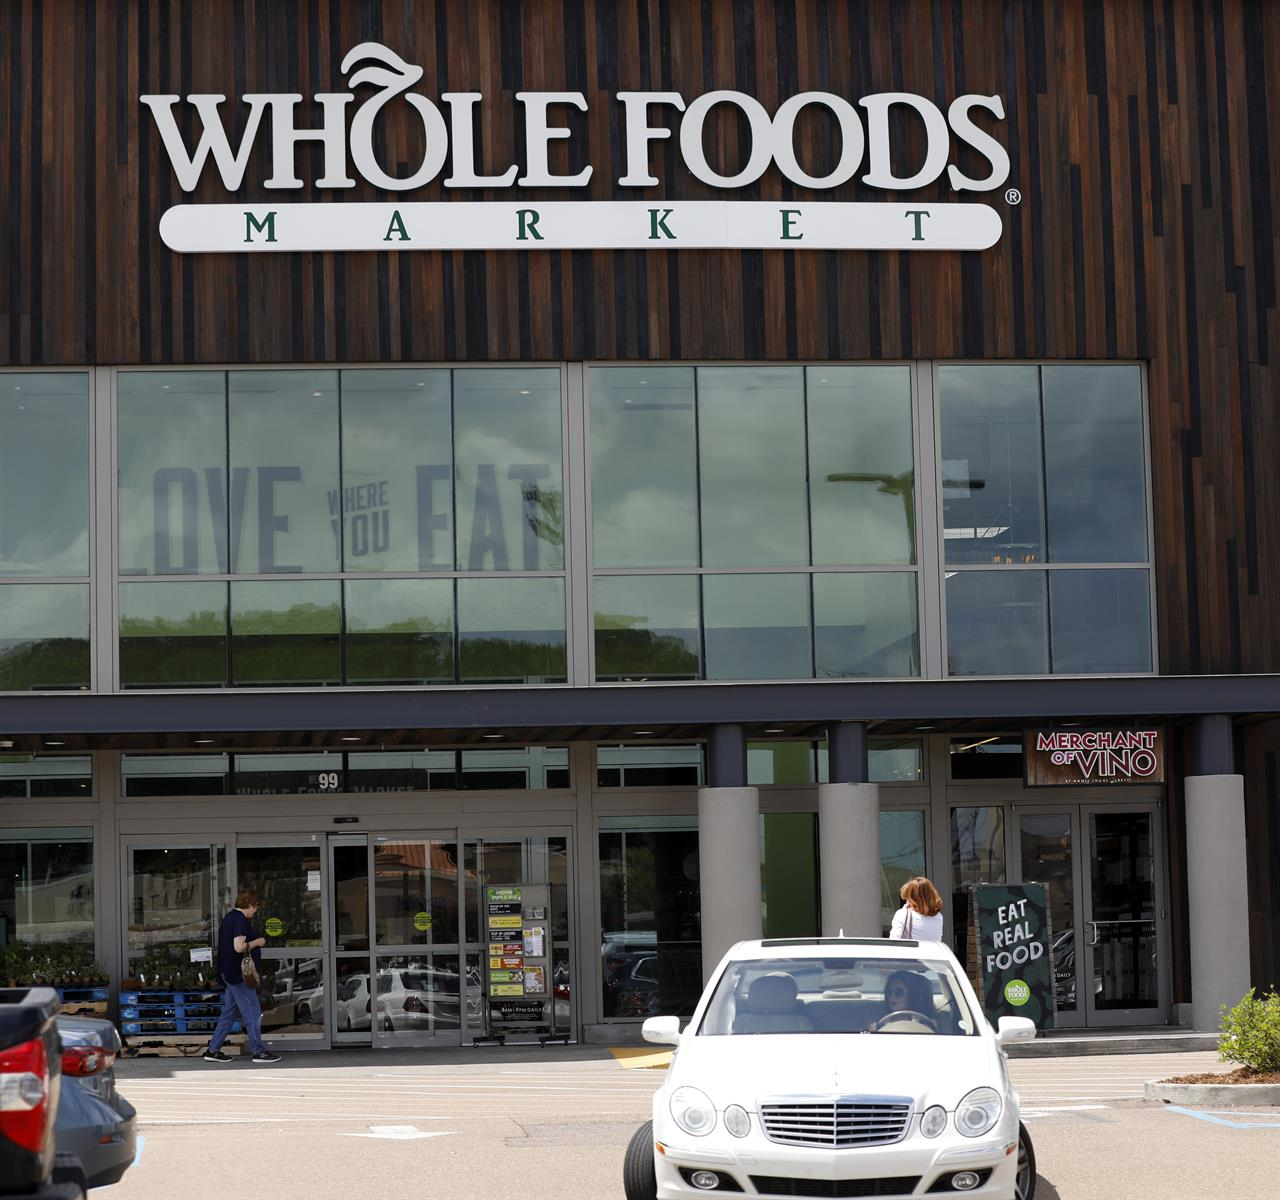 Denver News Market: Amazon Deal For Whole Foods Could Bring Retail Experiments